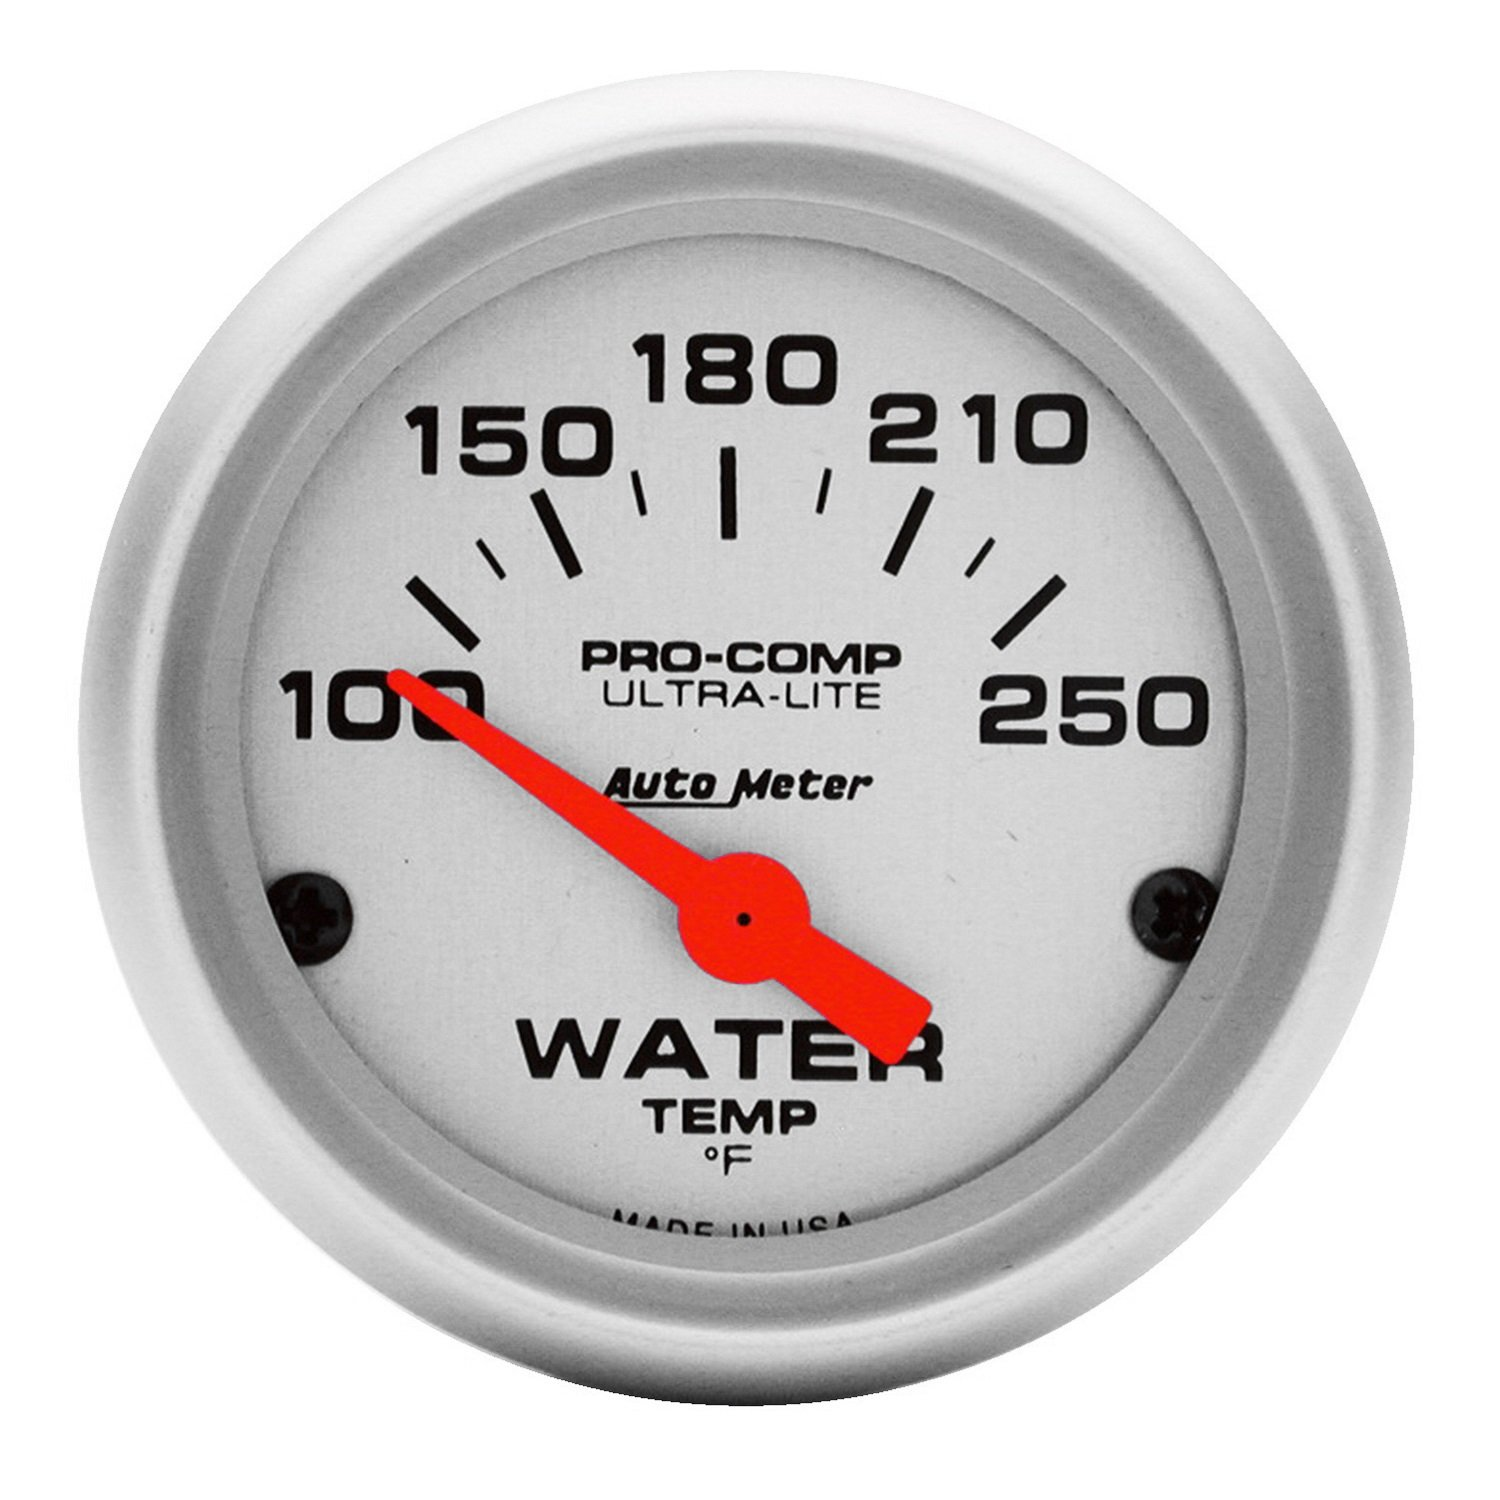 auto meter 4337 ultra-lite electric water temperature gauge